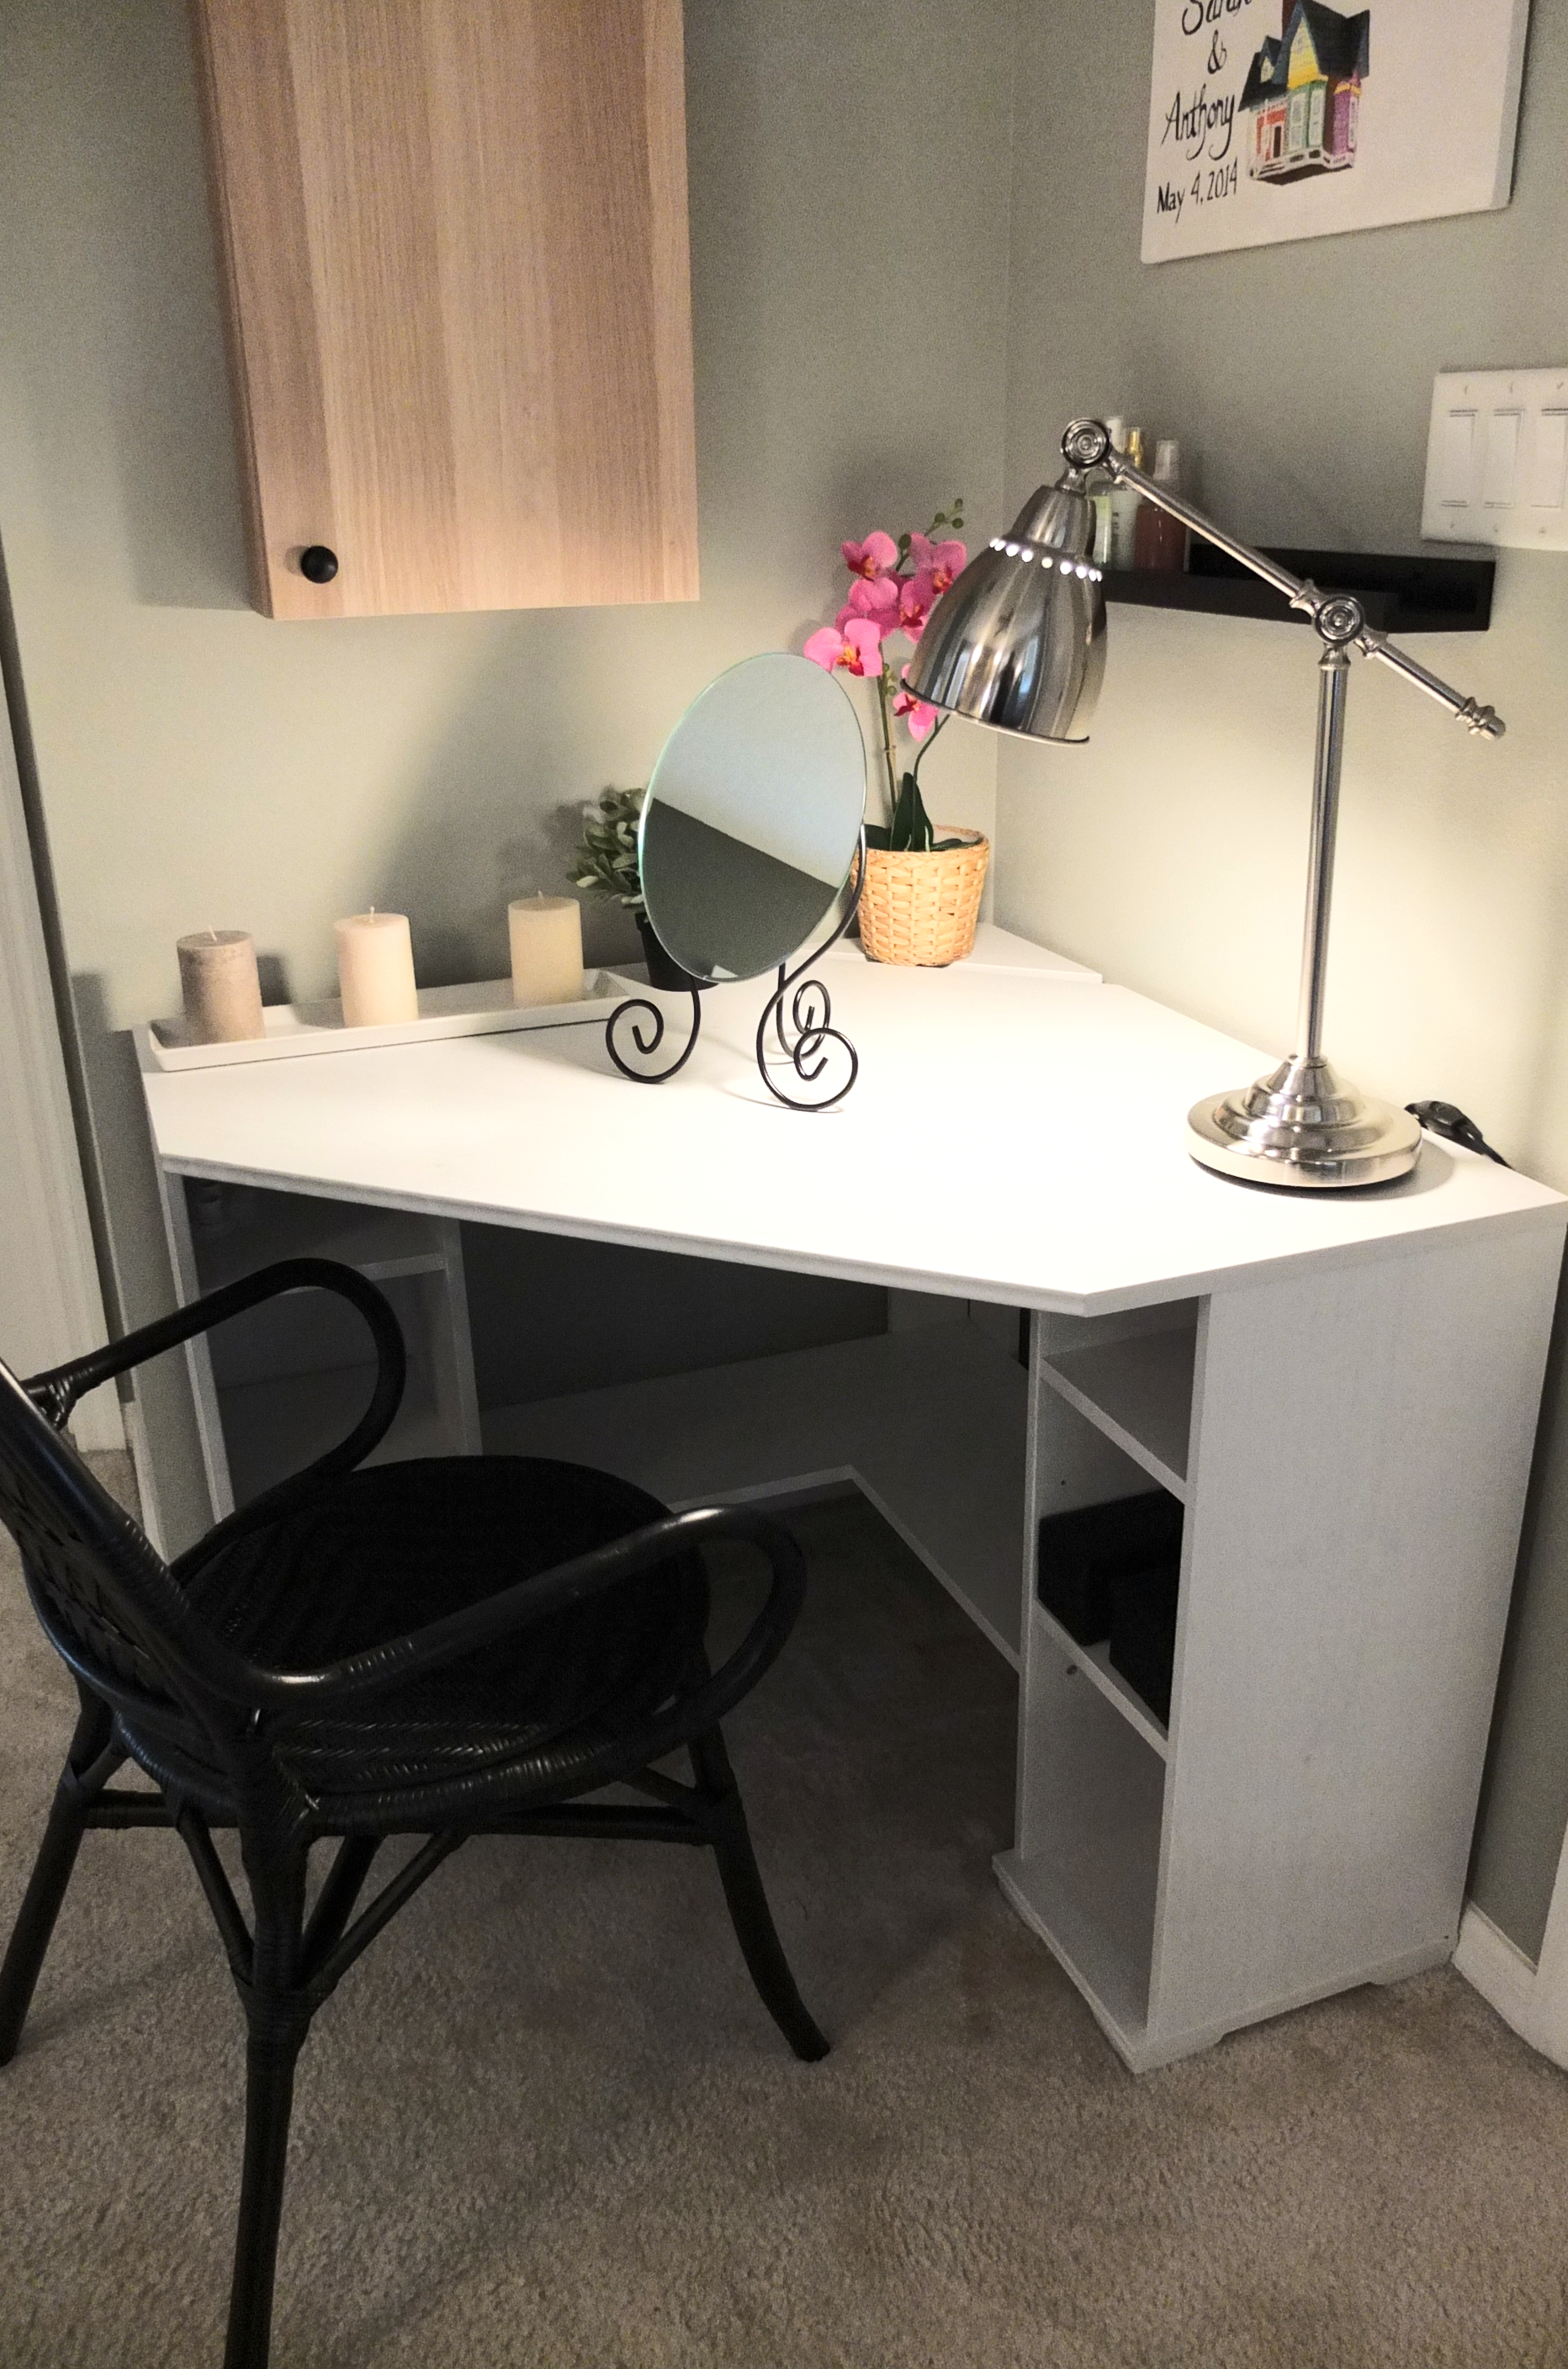 Corner Desks Brisbane The BorgsjÖ Corner Desk Tucks Neatly In A Corner With Enough Top